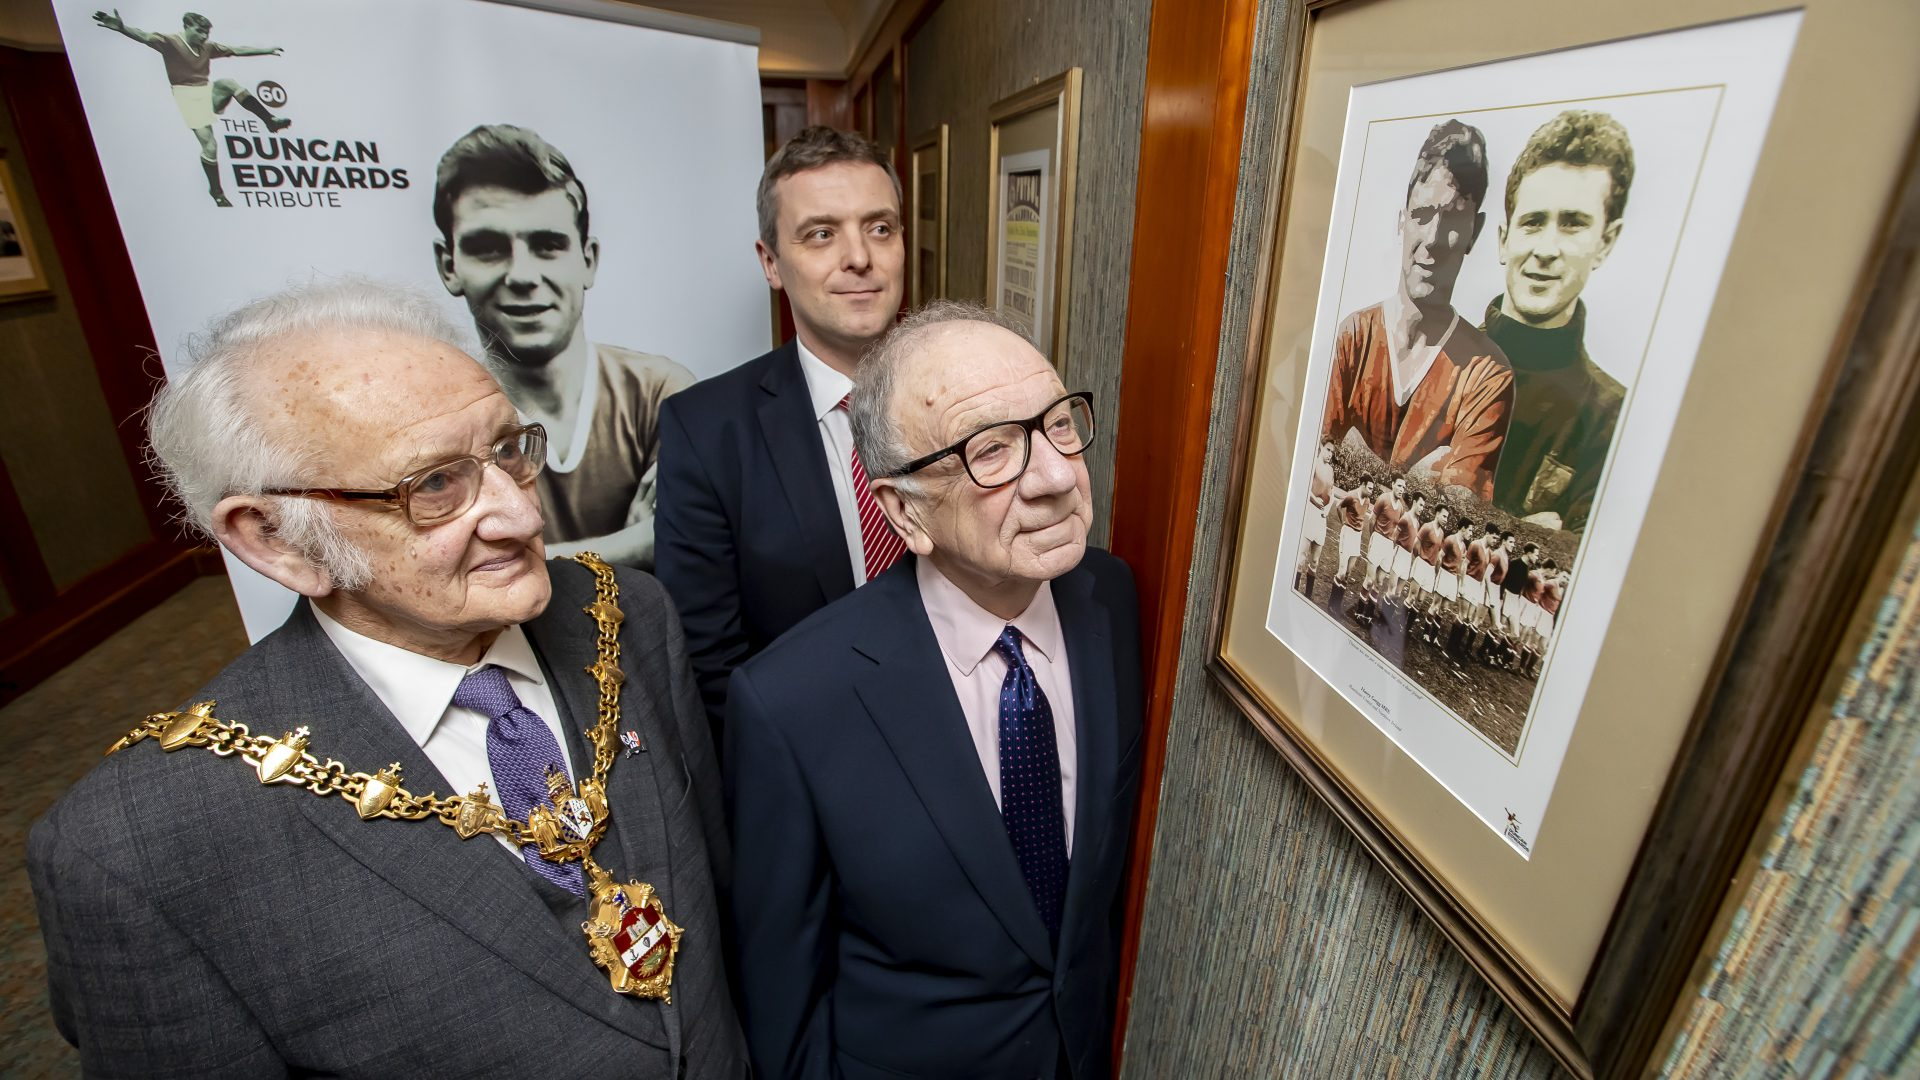 DUNCAN EDWARDS TRIBUTE ROOM OFFICIALLY OPENED